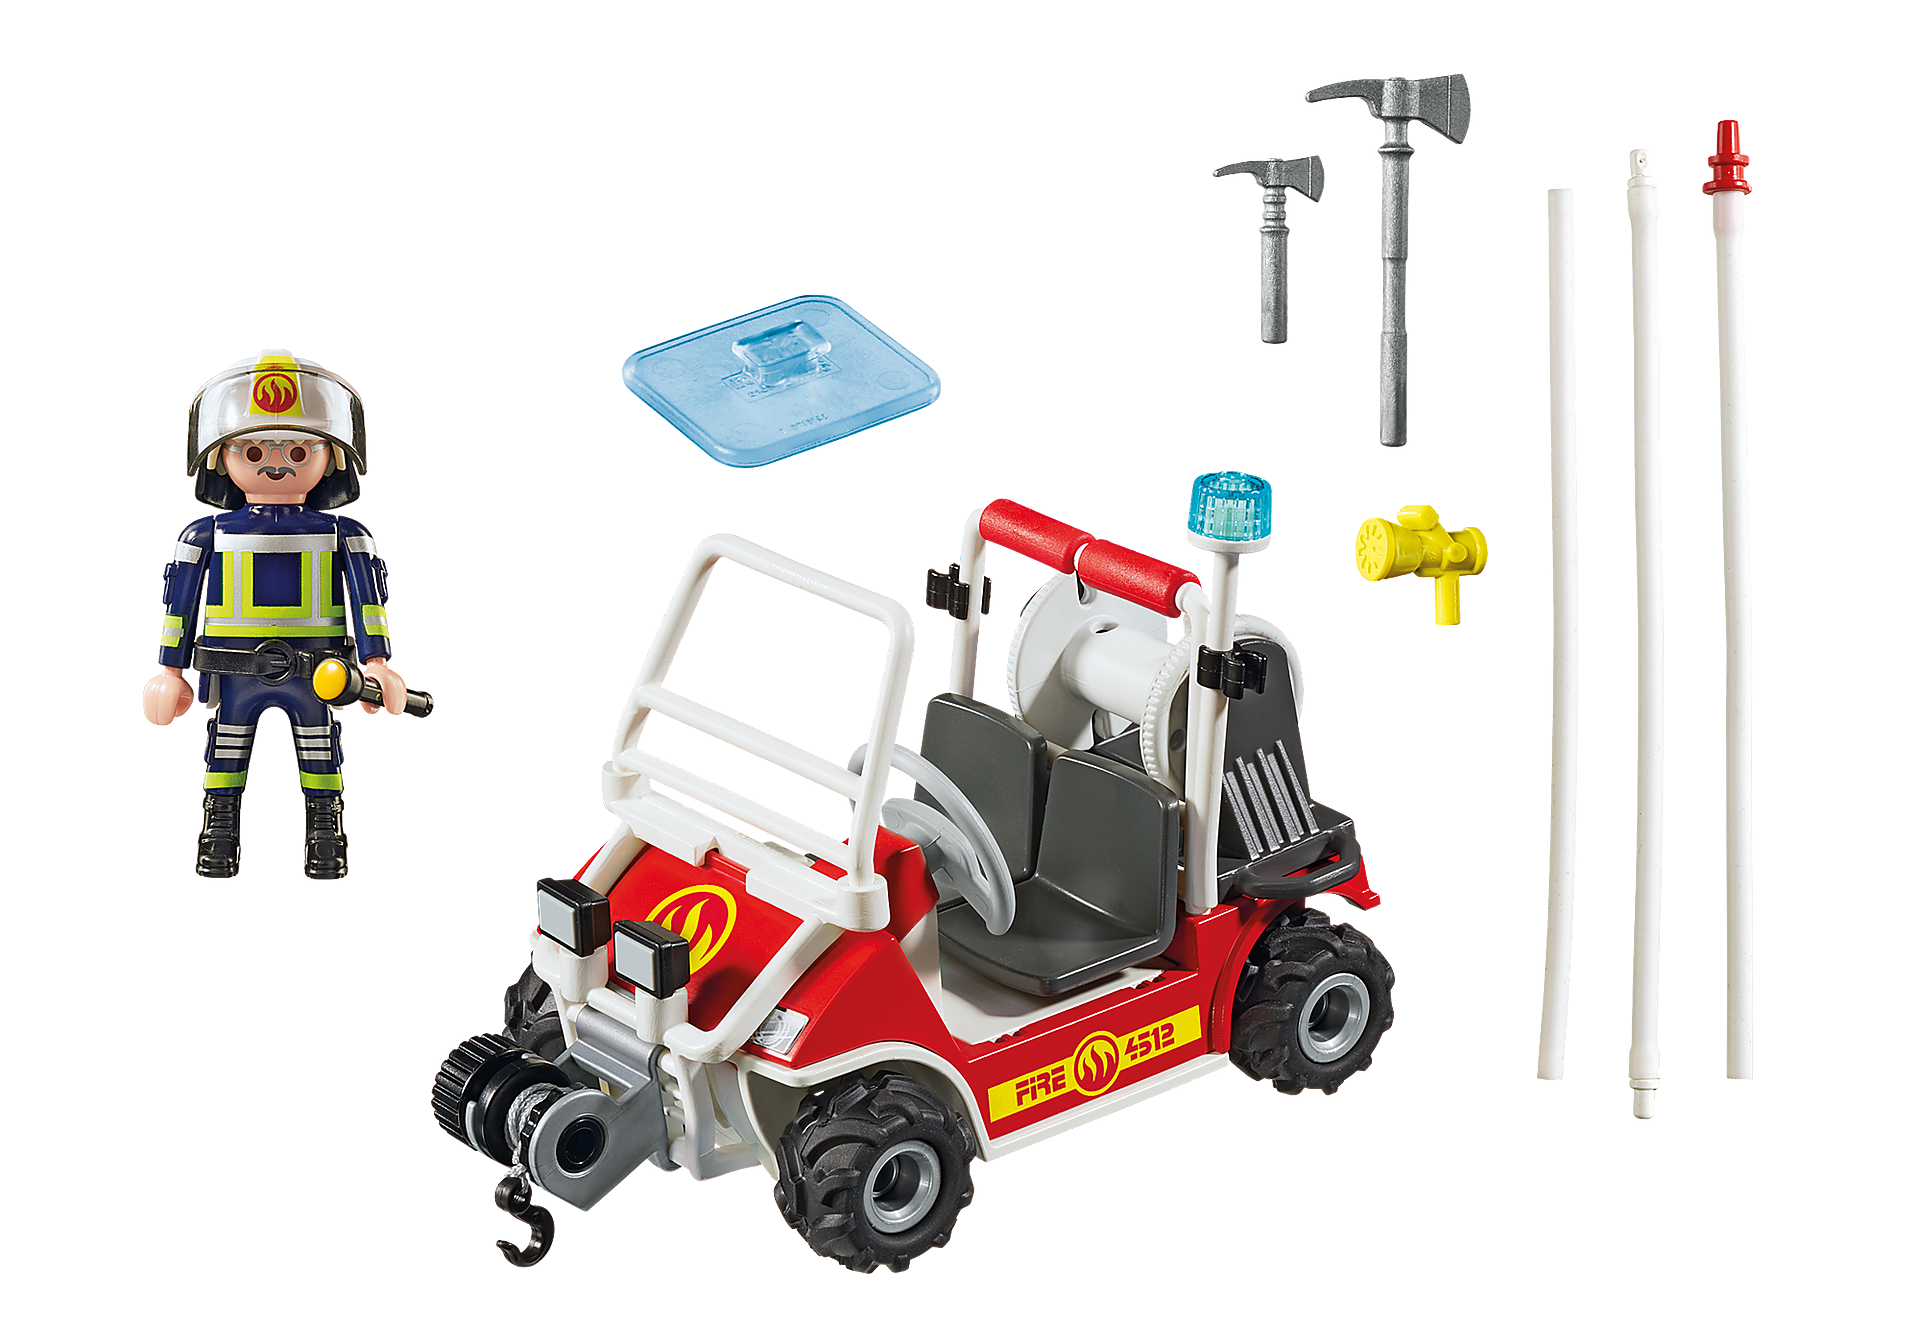 http://media.playmobil.com/i/playmobil/5398_product_box_back/Flygplats med trafikledningstorn